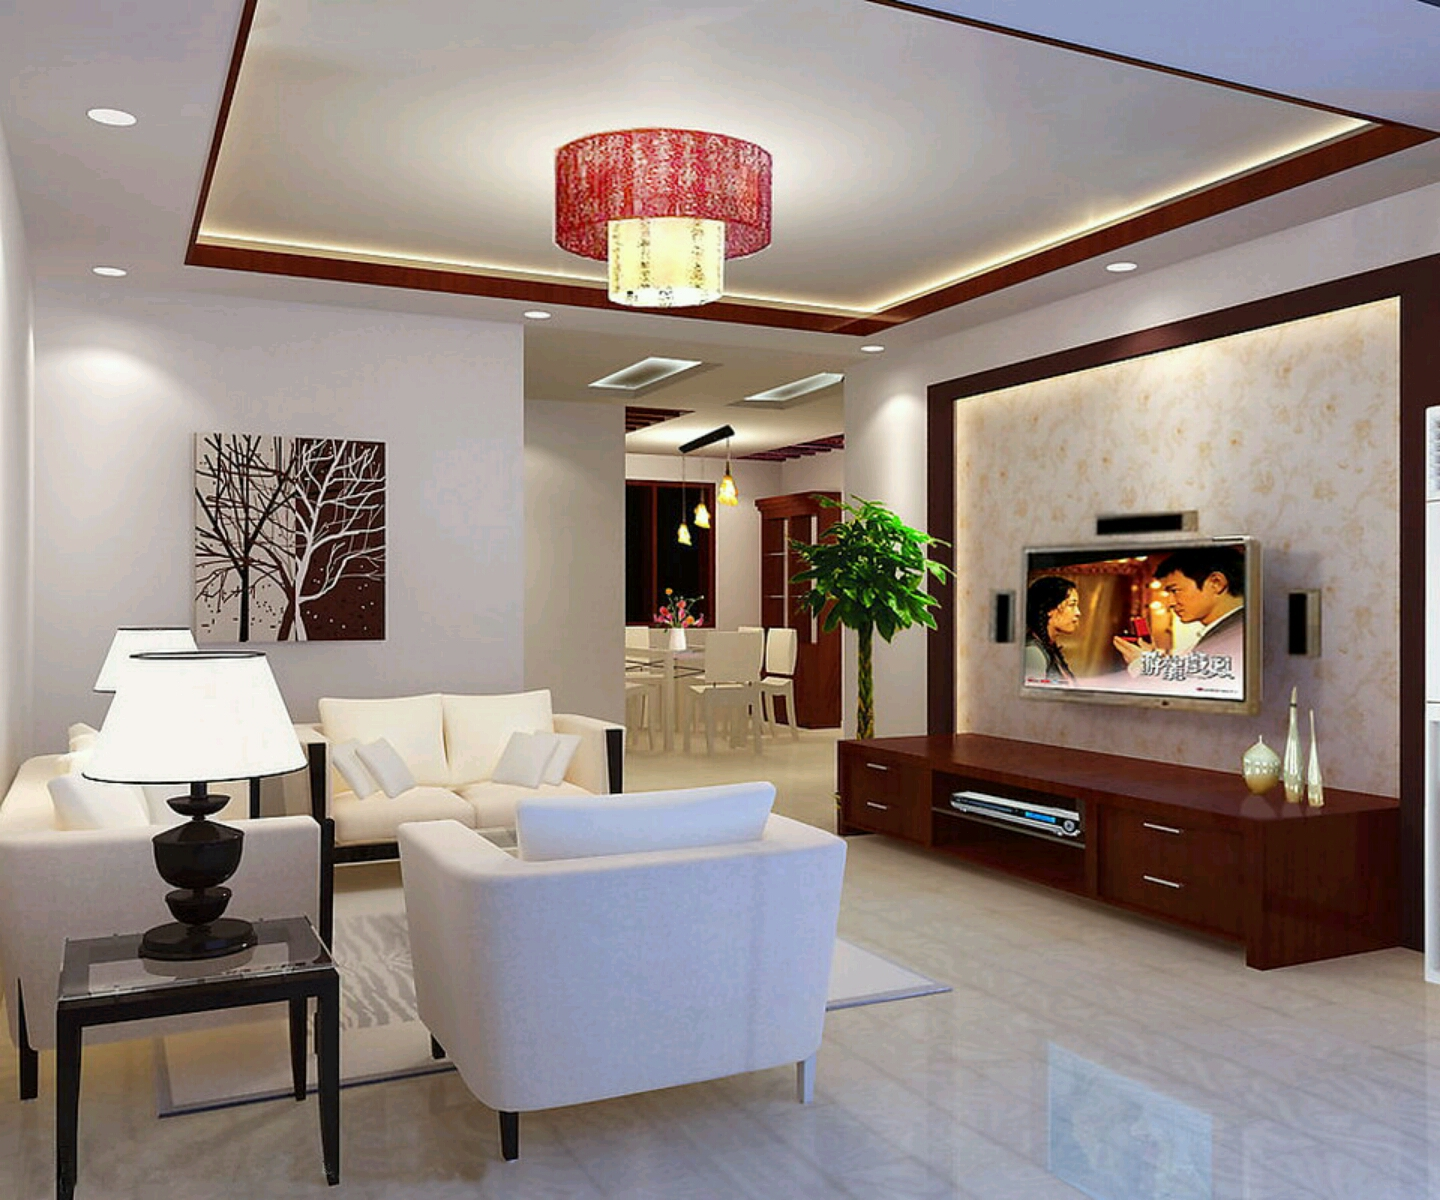 Best Interior Design House: interior decoration ideas for small living room